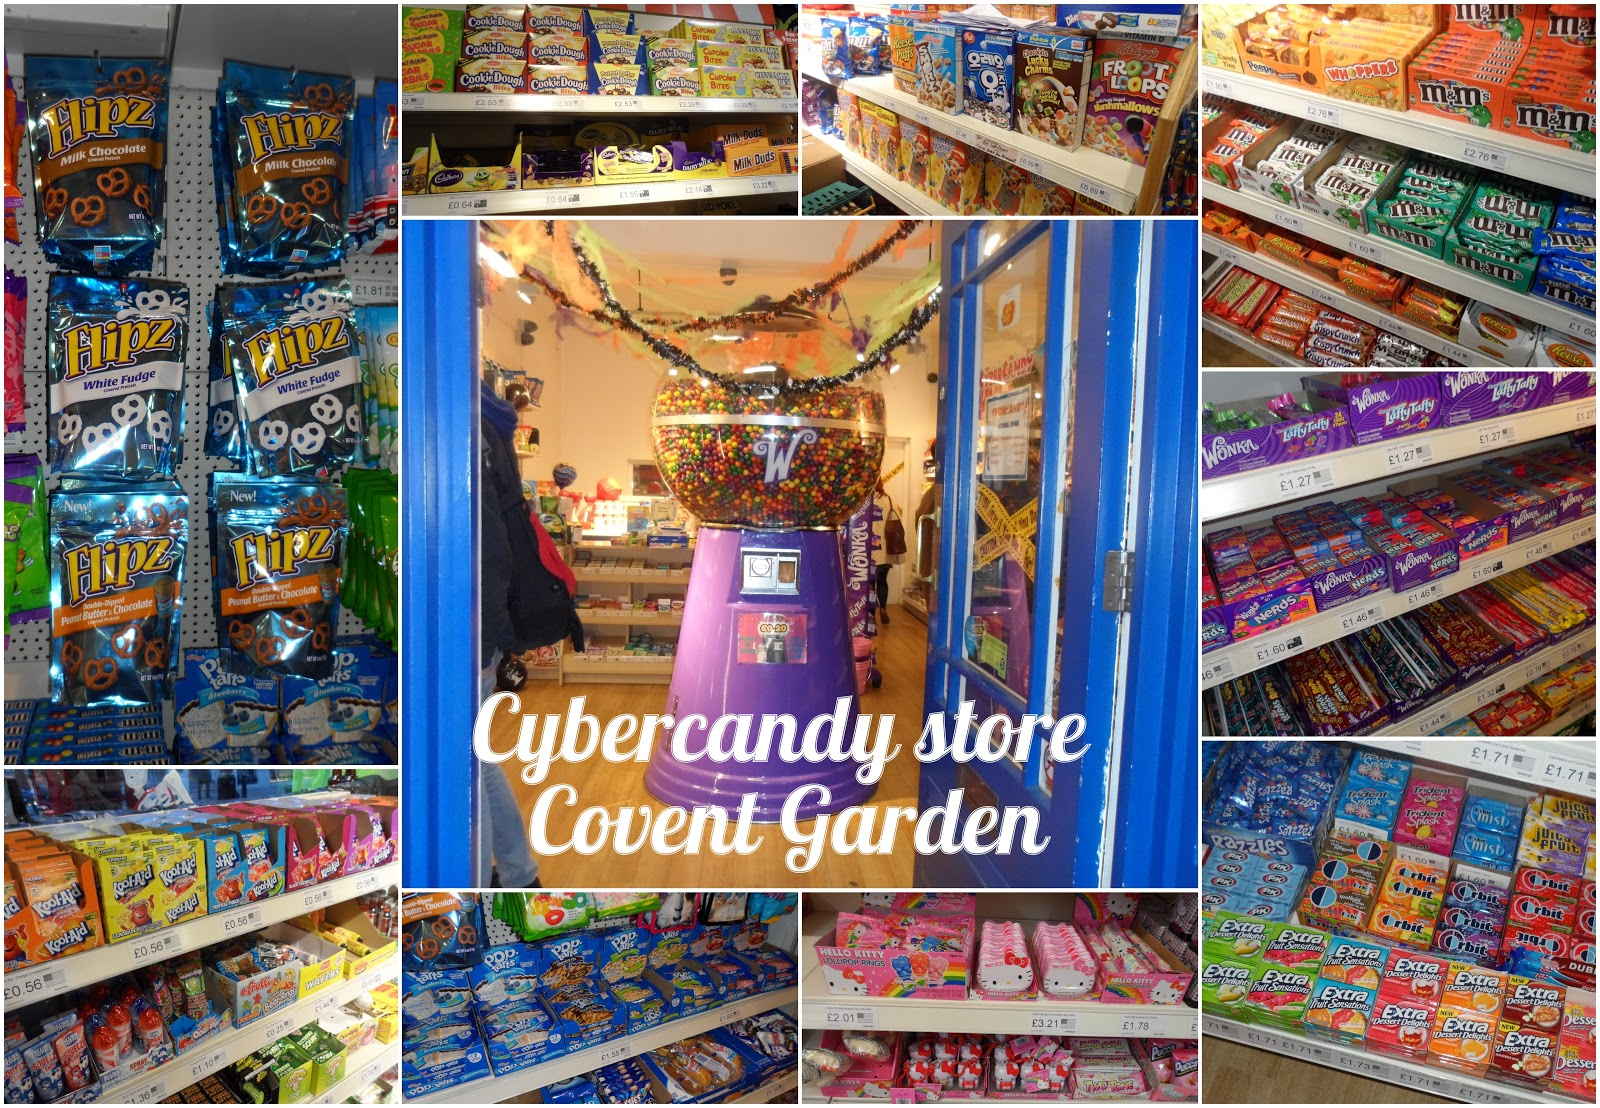 Raiding the pick 39 n 39 mix at cybercandy covent garden by flutter and s - Covent garden magasin ...